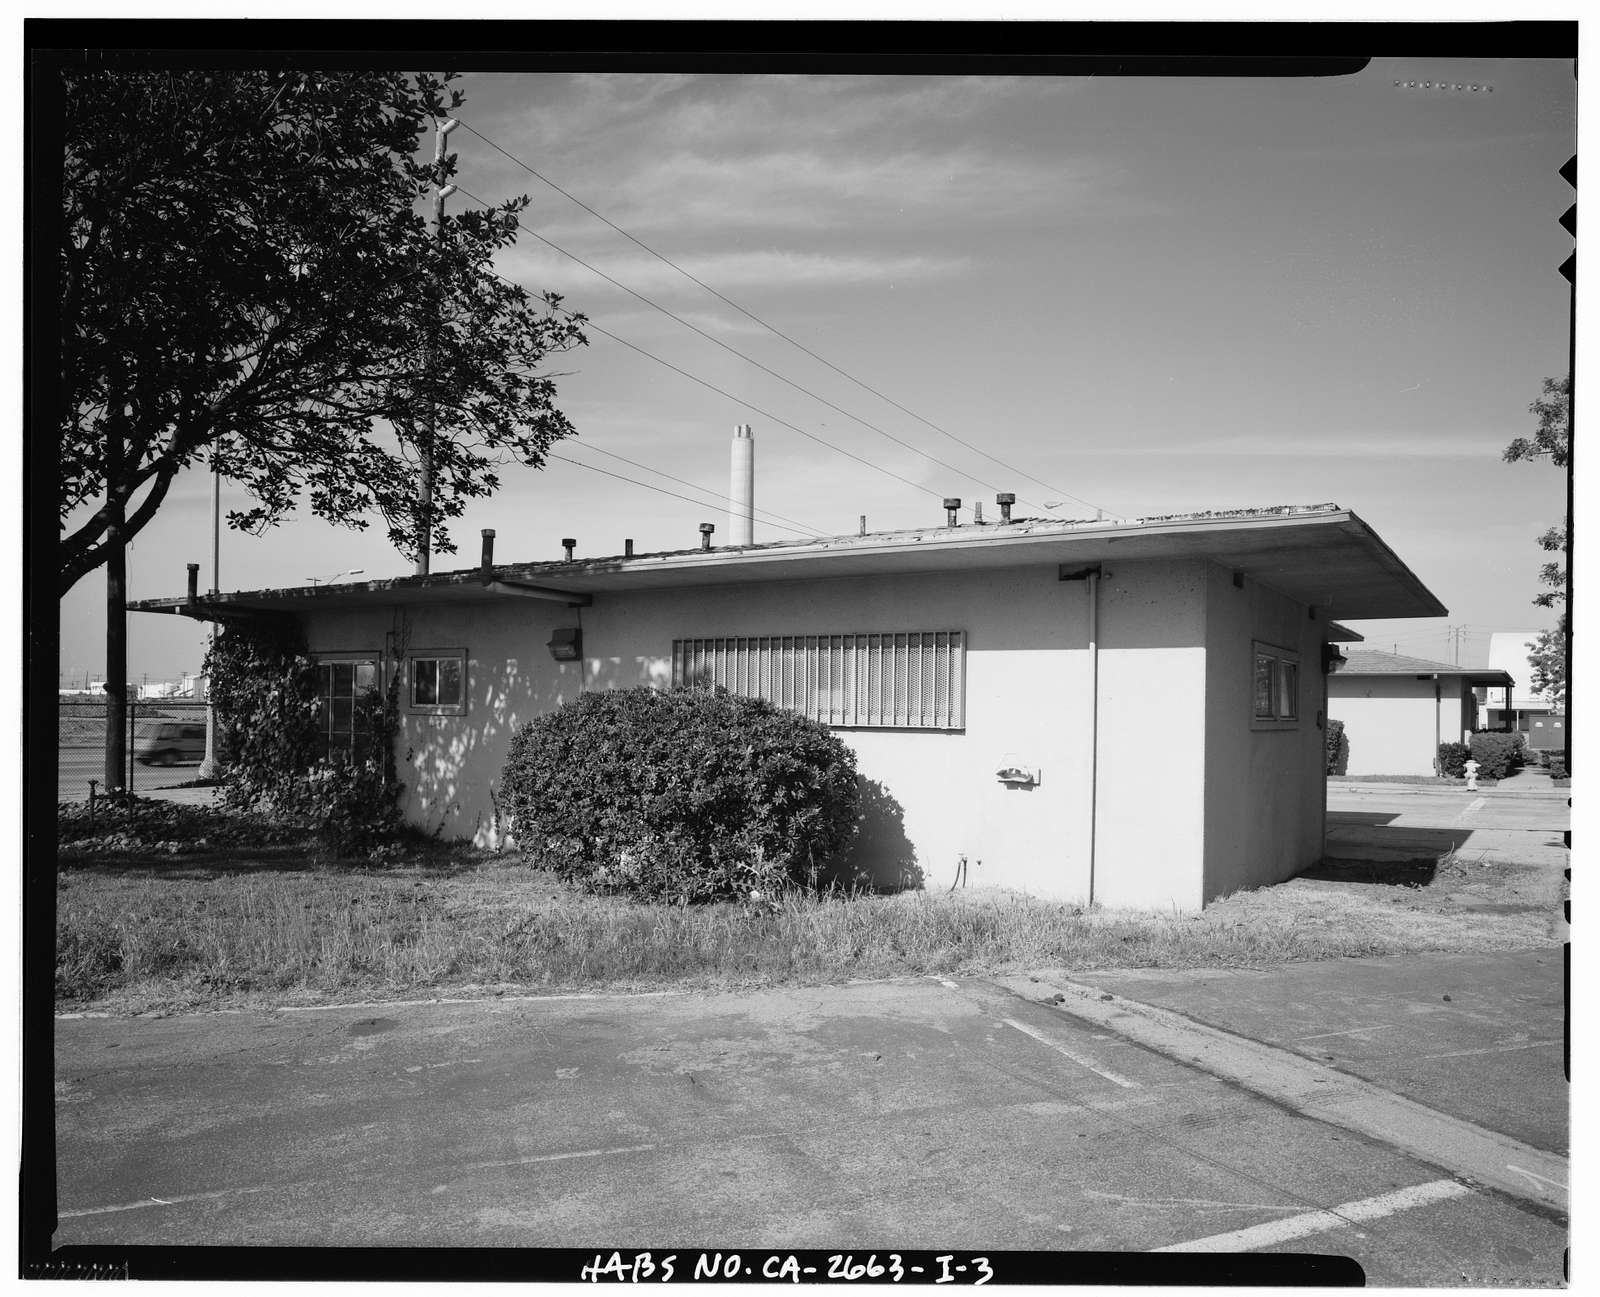 Roosevelt Base, Gatehouse, Corner of Ocean Boulevard & Gate 1, Long Beach, Los Angeles County, CA